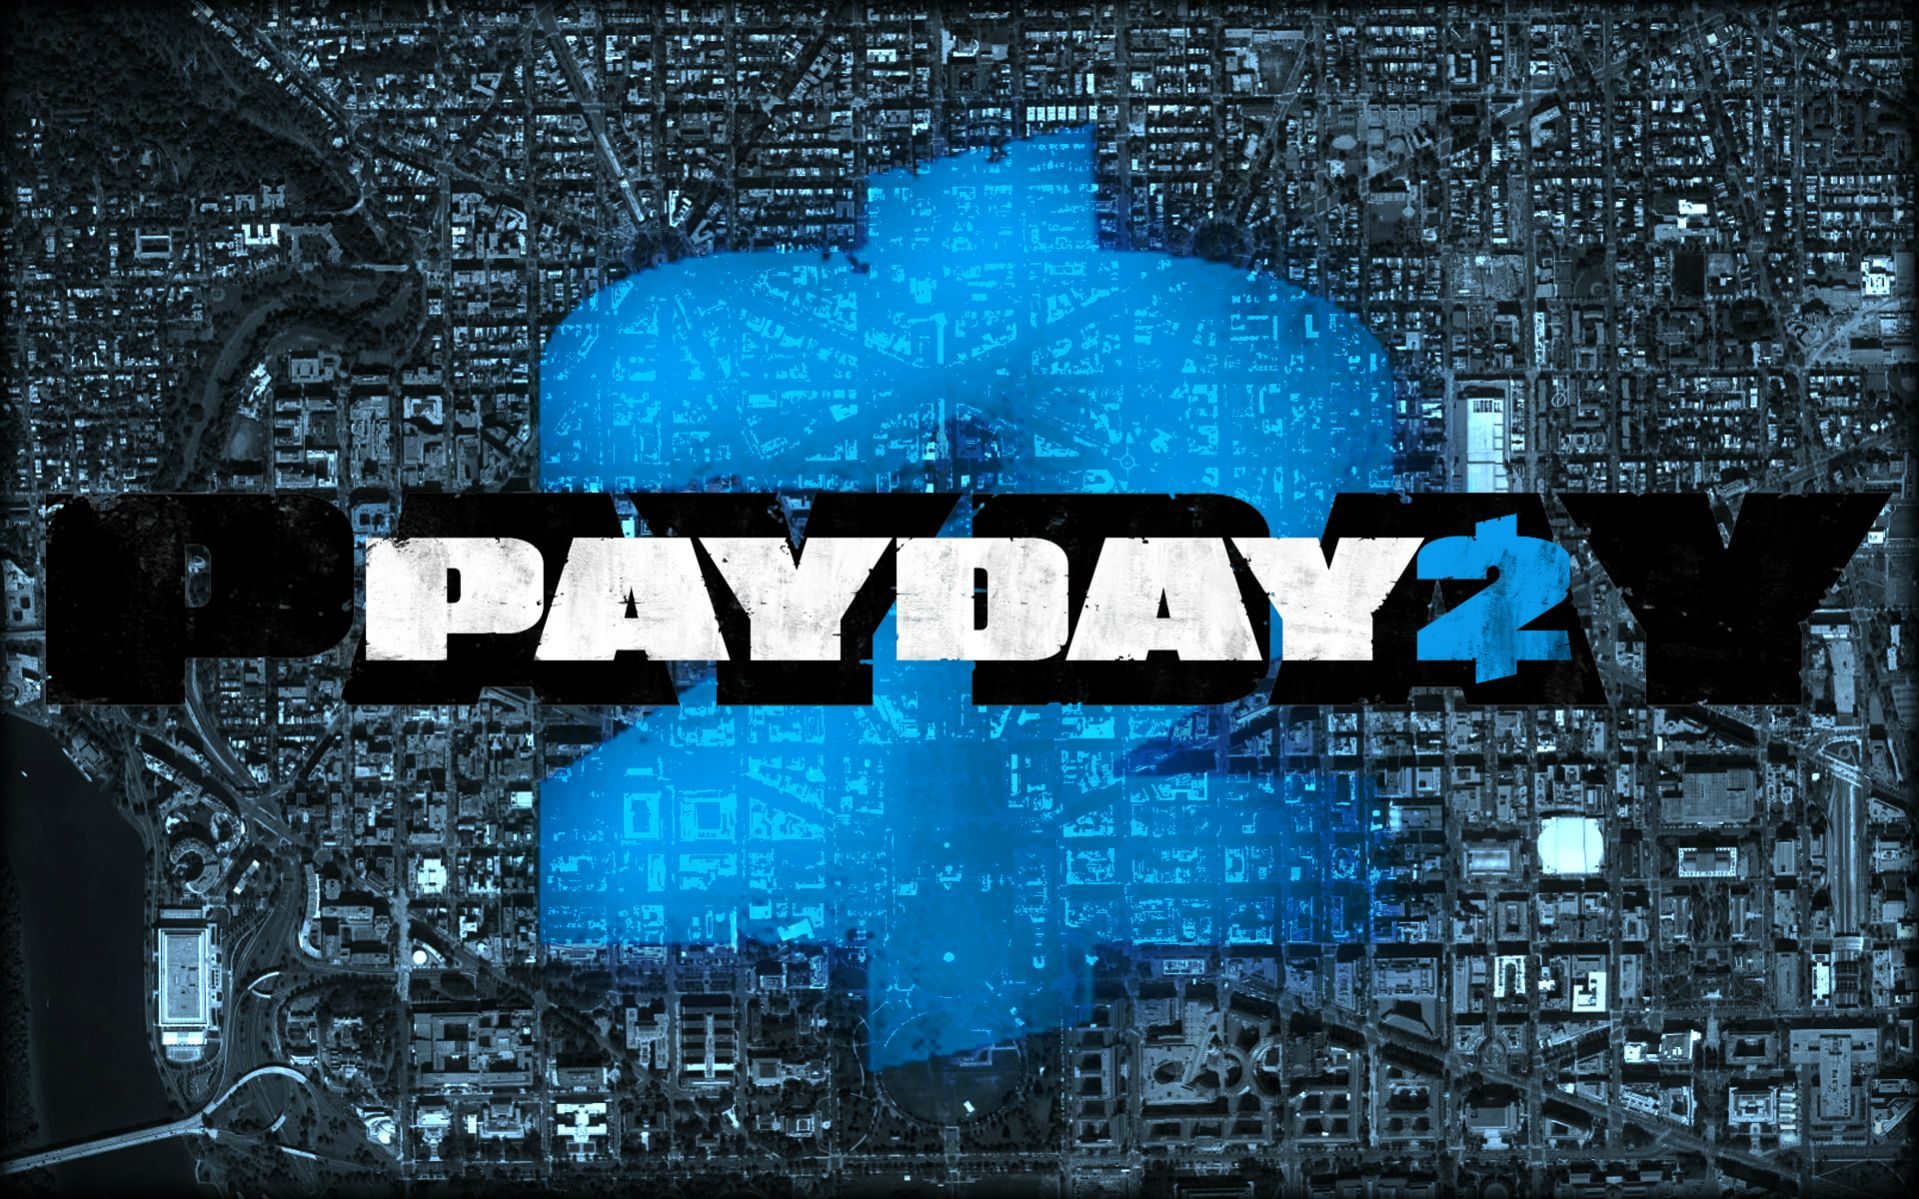 'Payday 2' update fun but for the matchmaking glitches